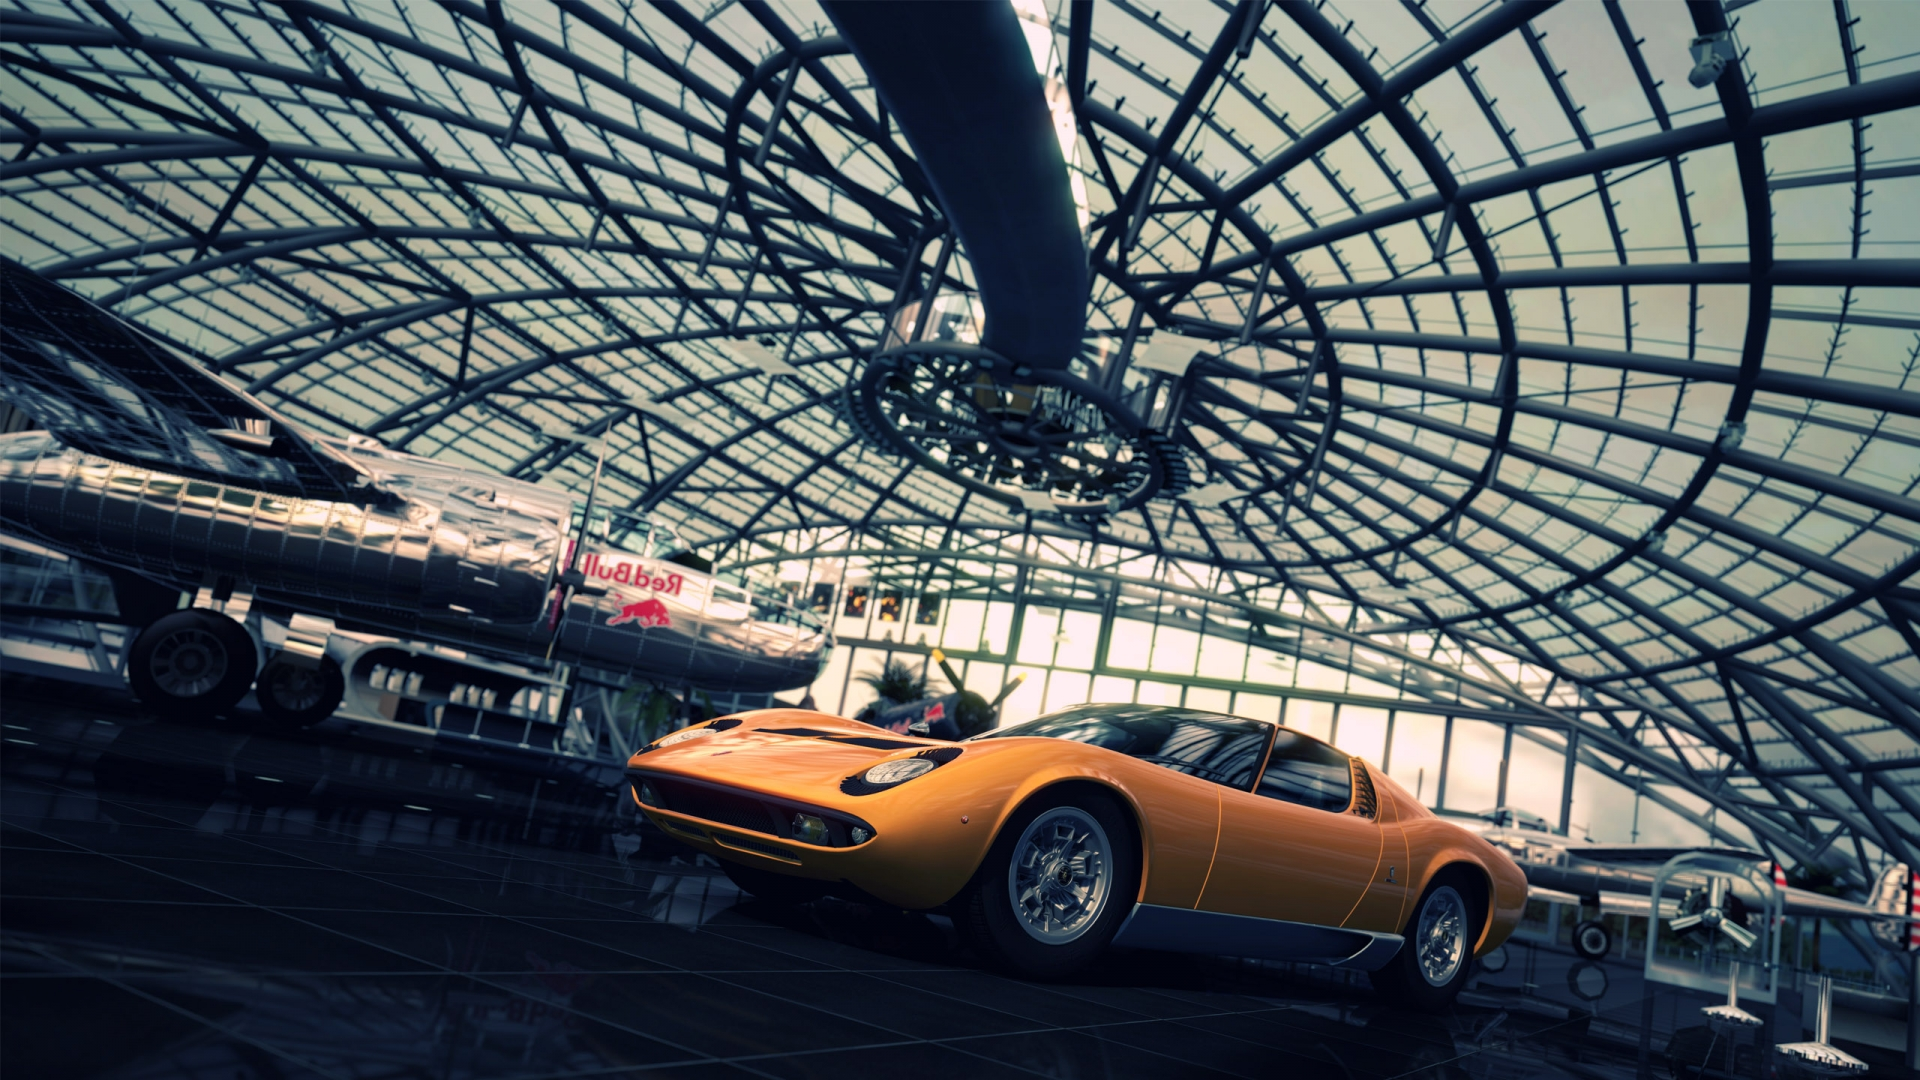 Hd Car Wallpapers 1600x1200 12 Lamborghini Miura Hd Wallpapers Background Images